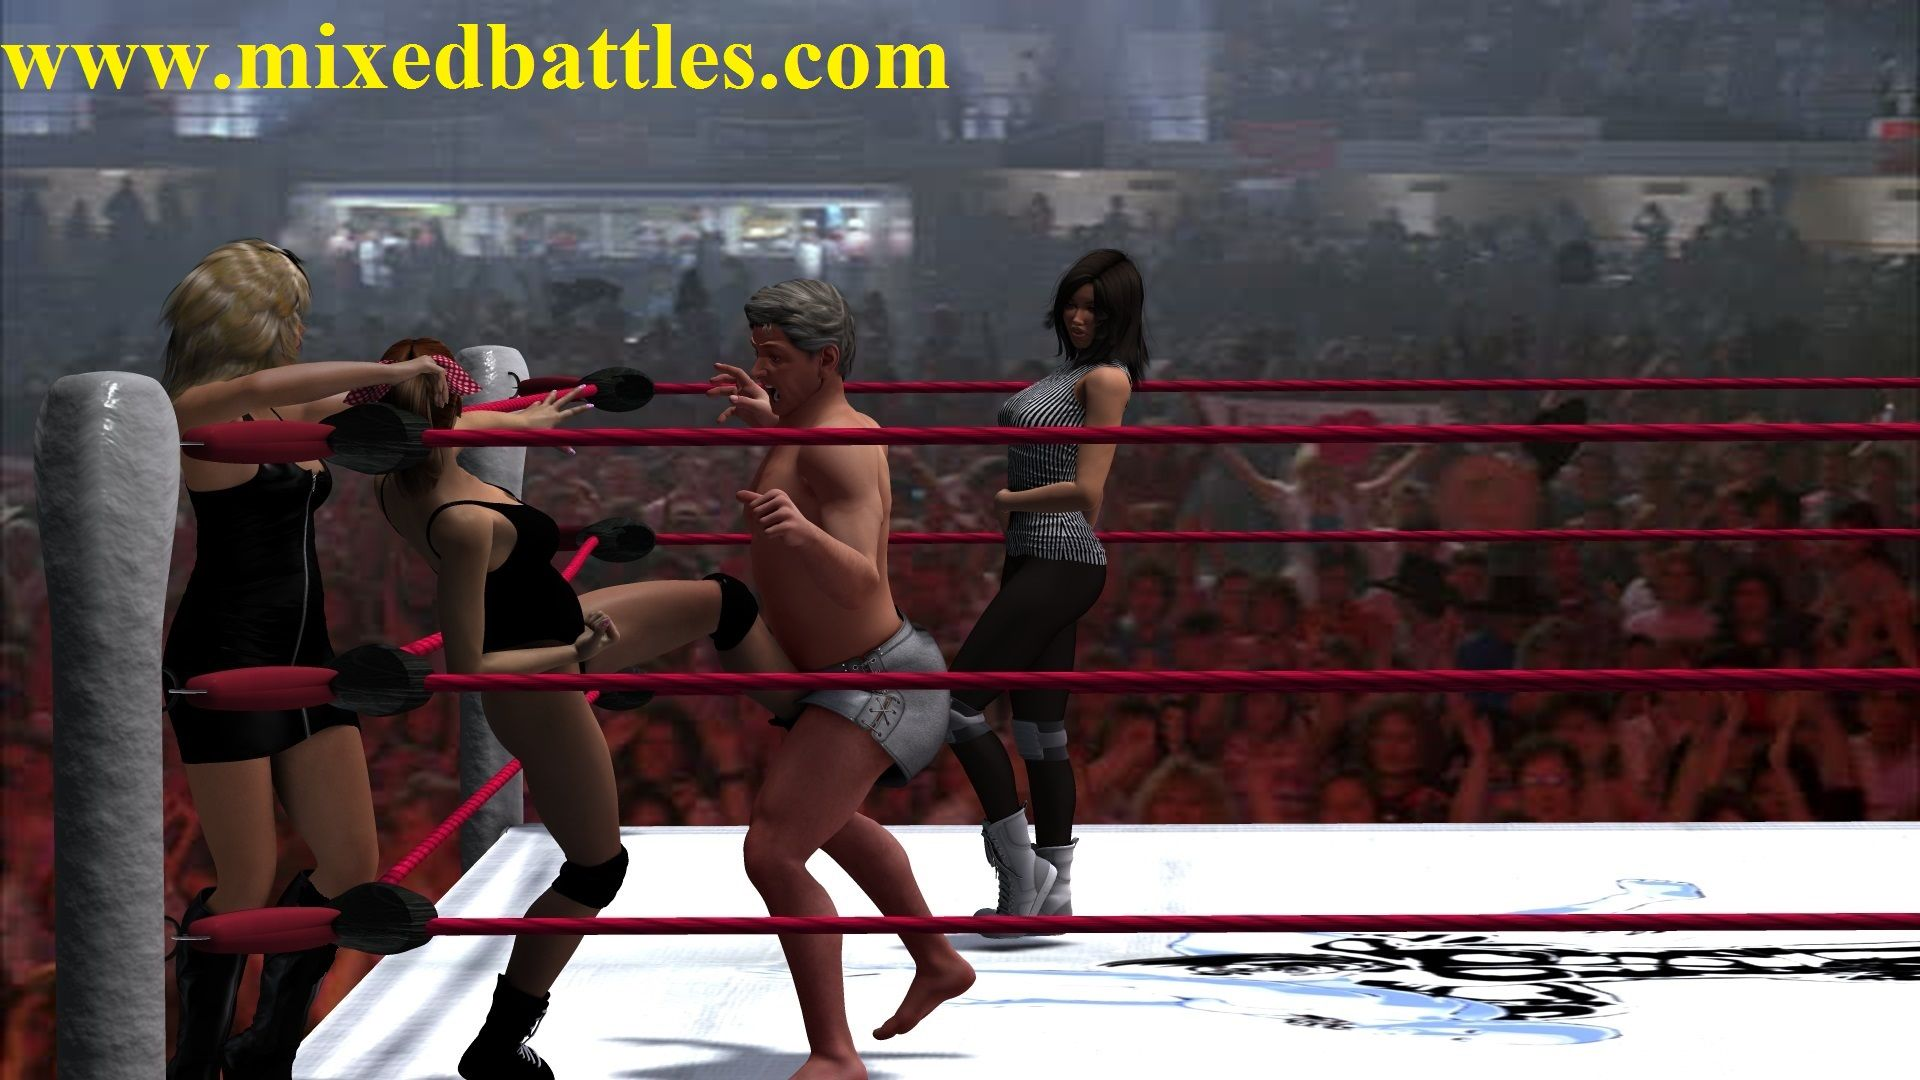 New #mixedwrestling pictures #ballbusting gallery added to